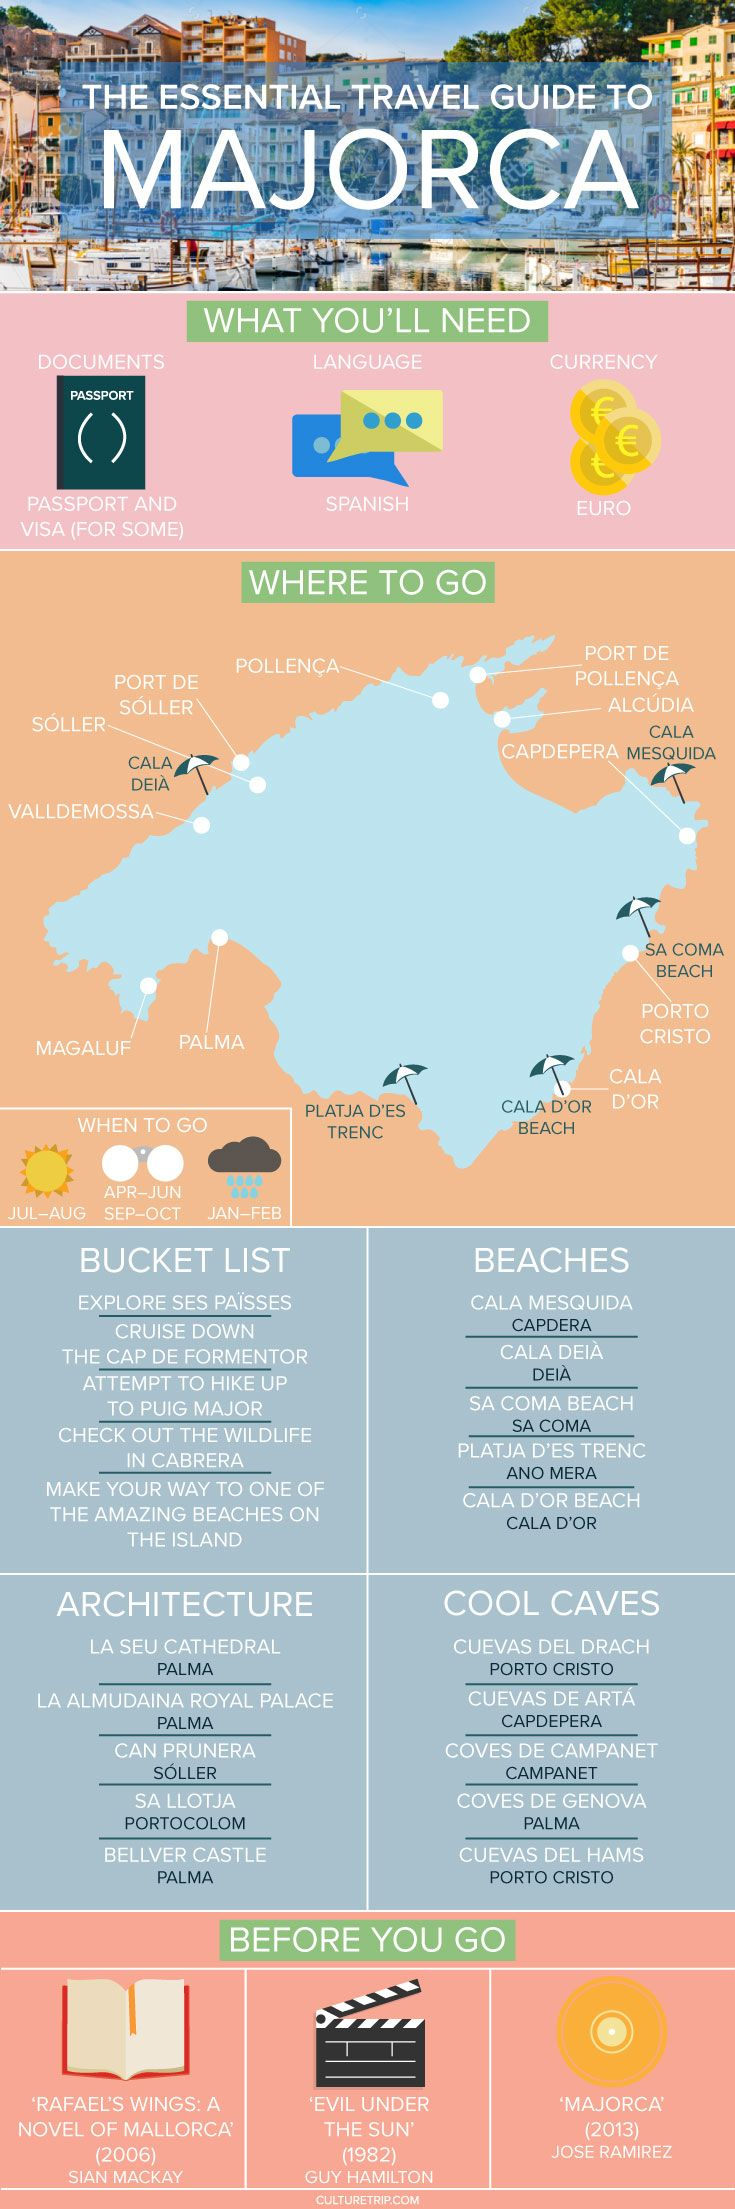 The Essential Travel Guide to Majorca Infographic